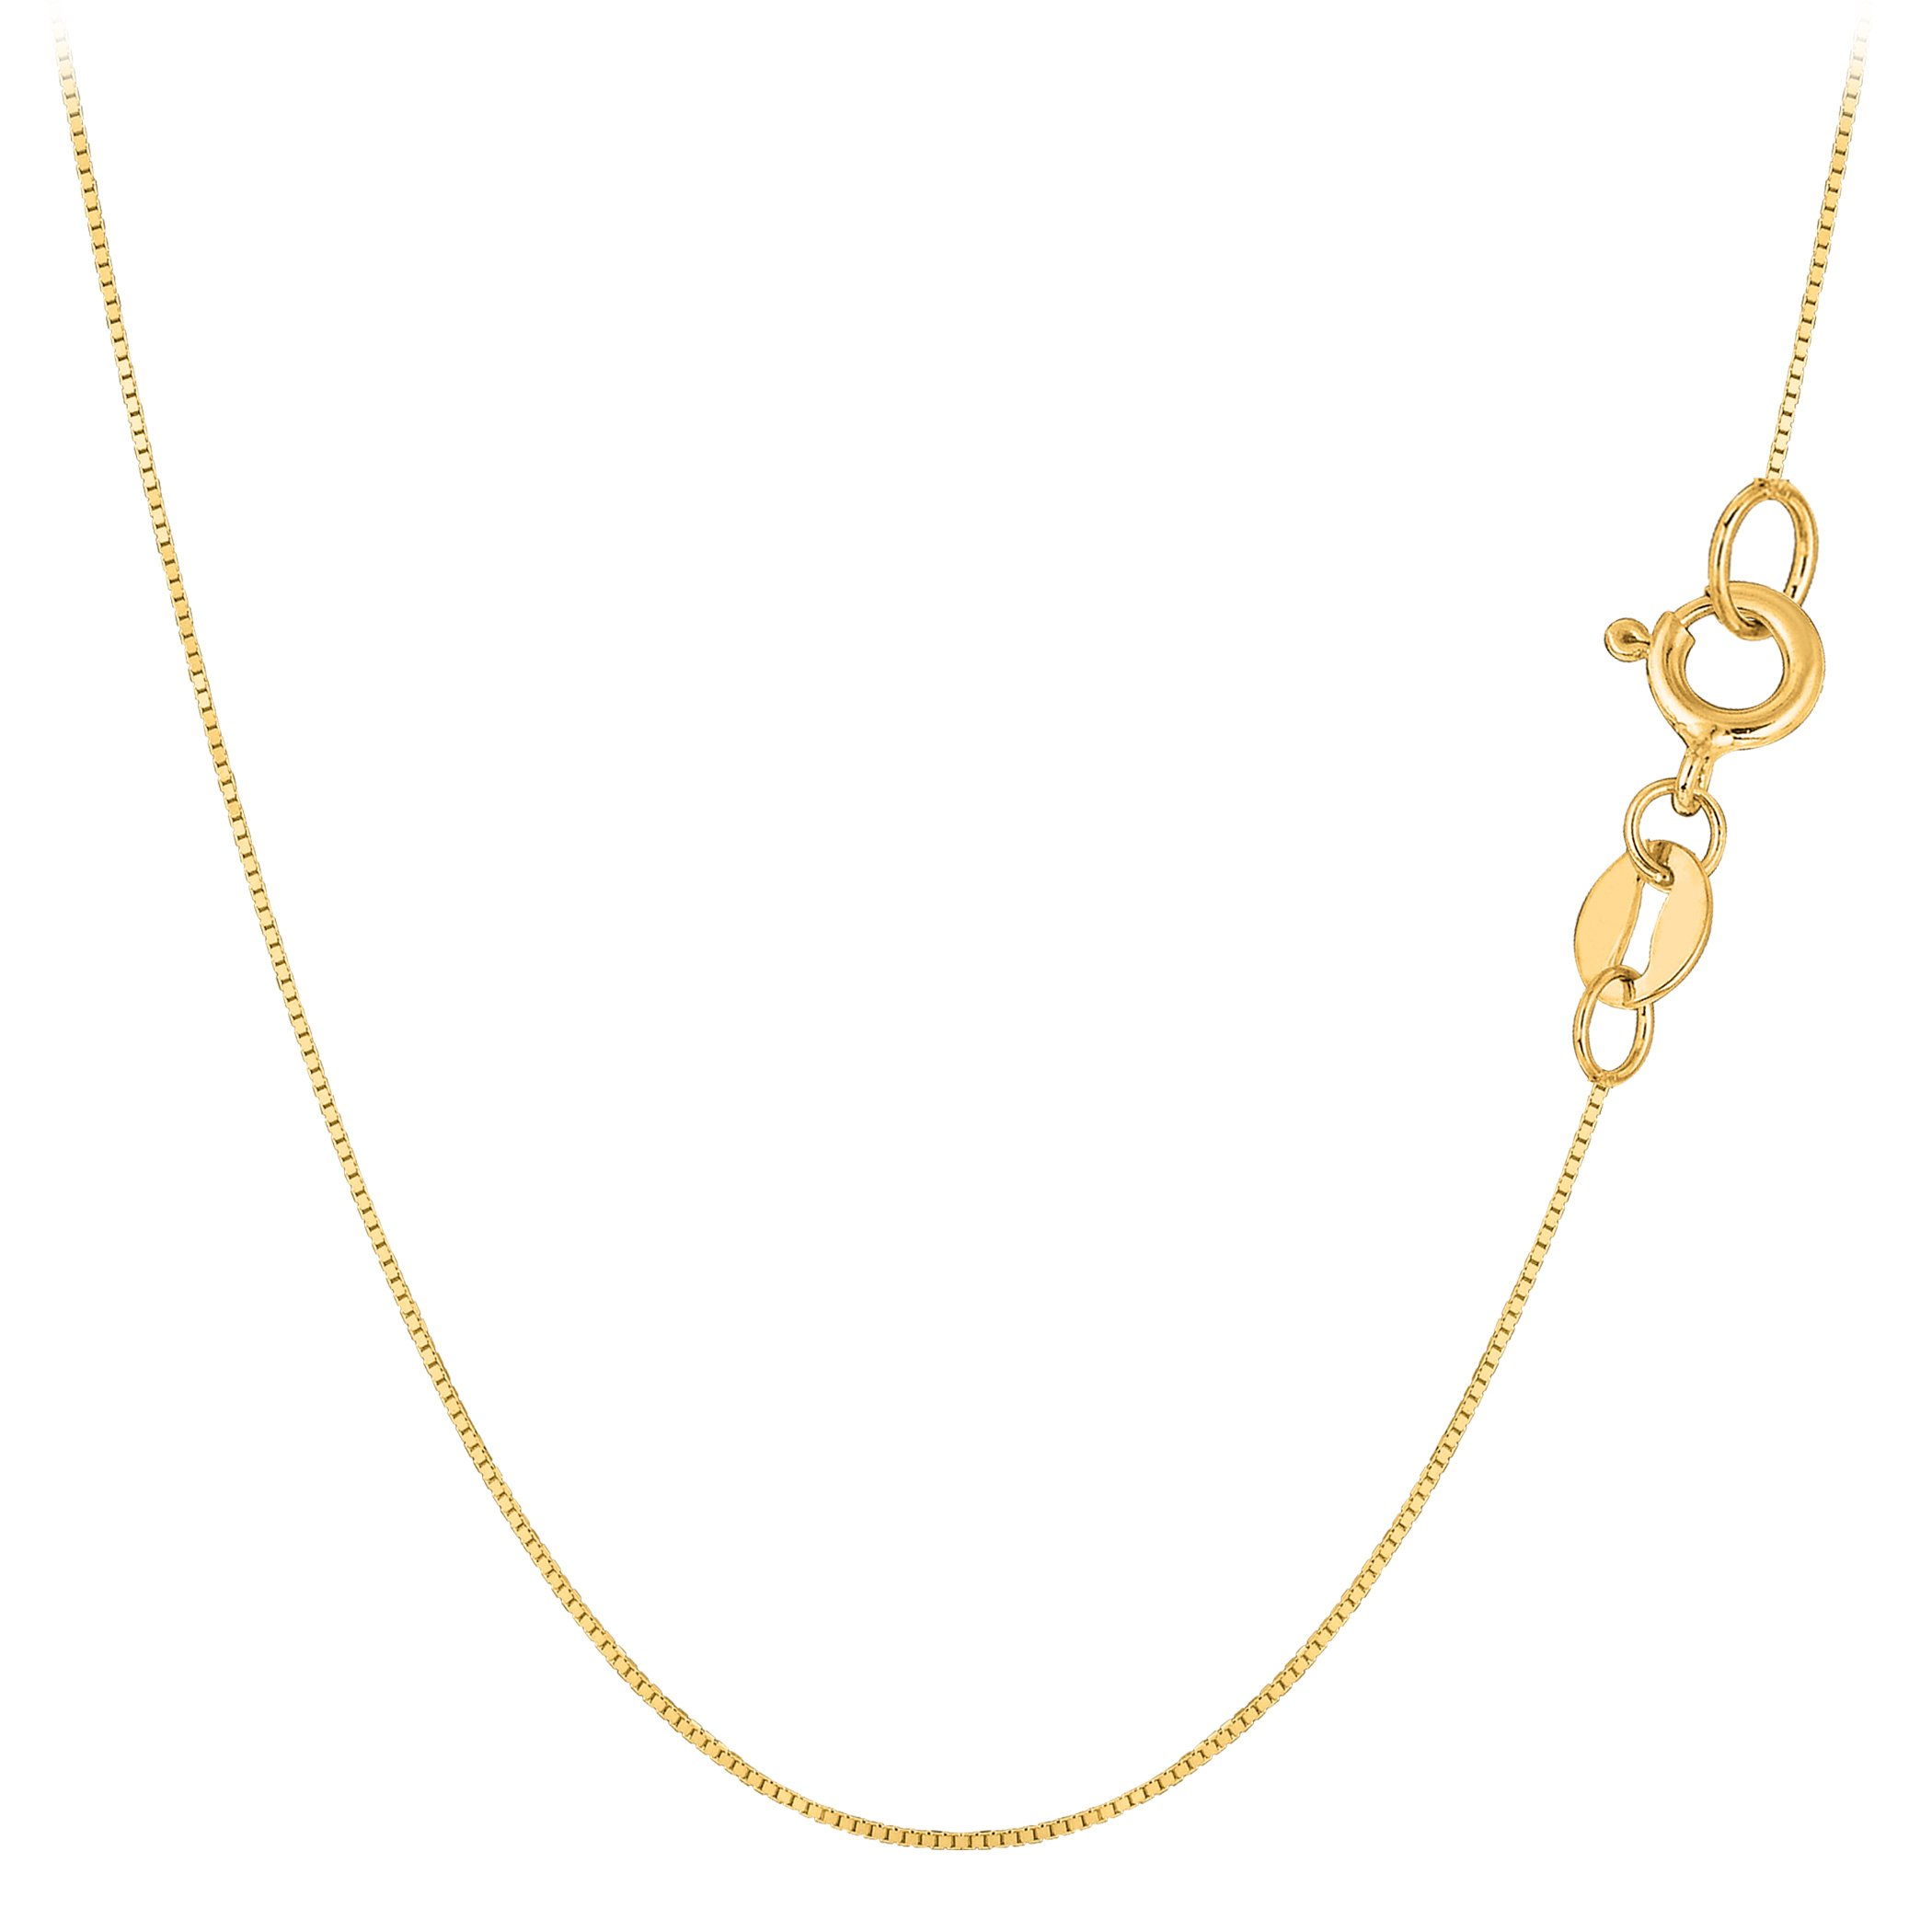 10k Yellow Gold Classic Mirror Box Chain Necklace, 0.6mm, 16''